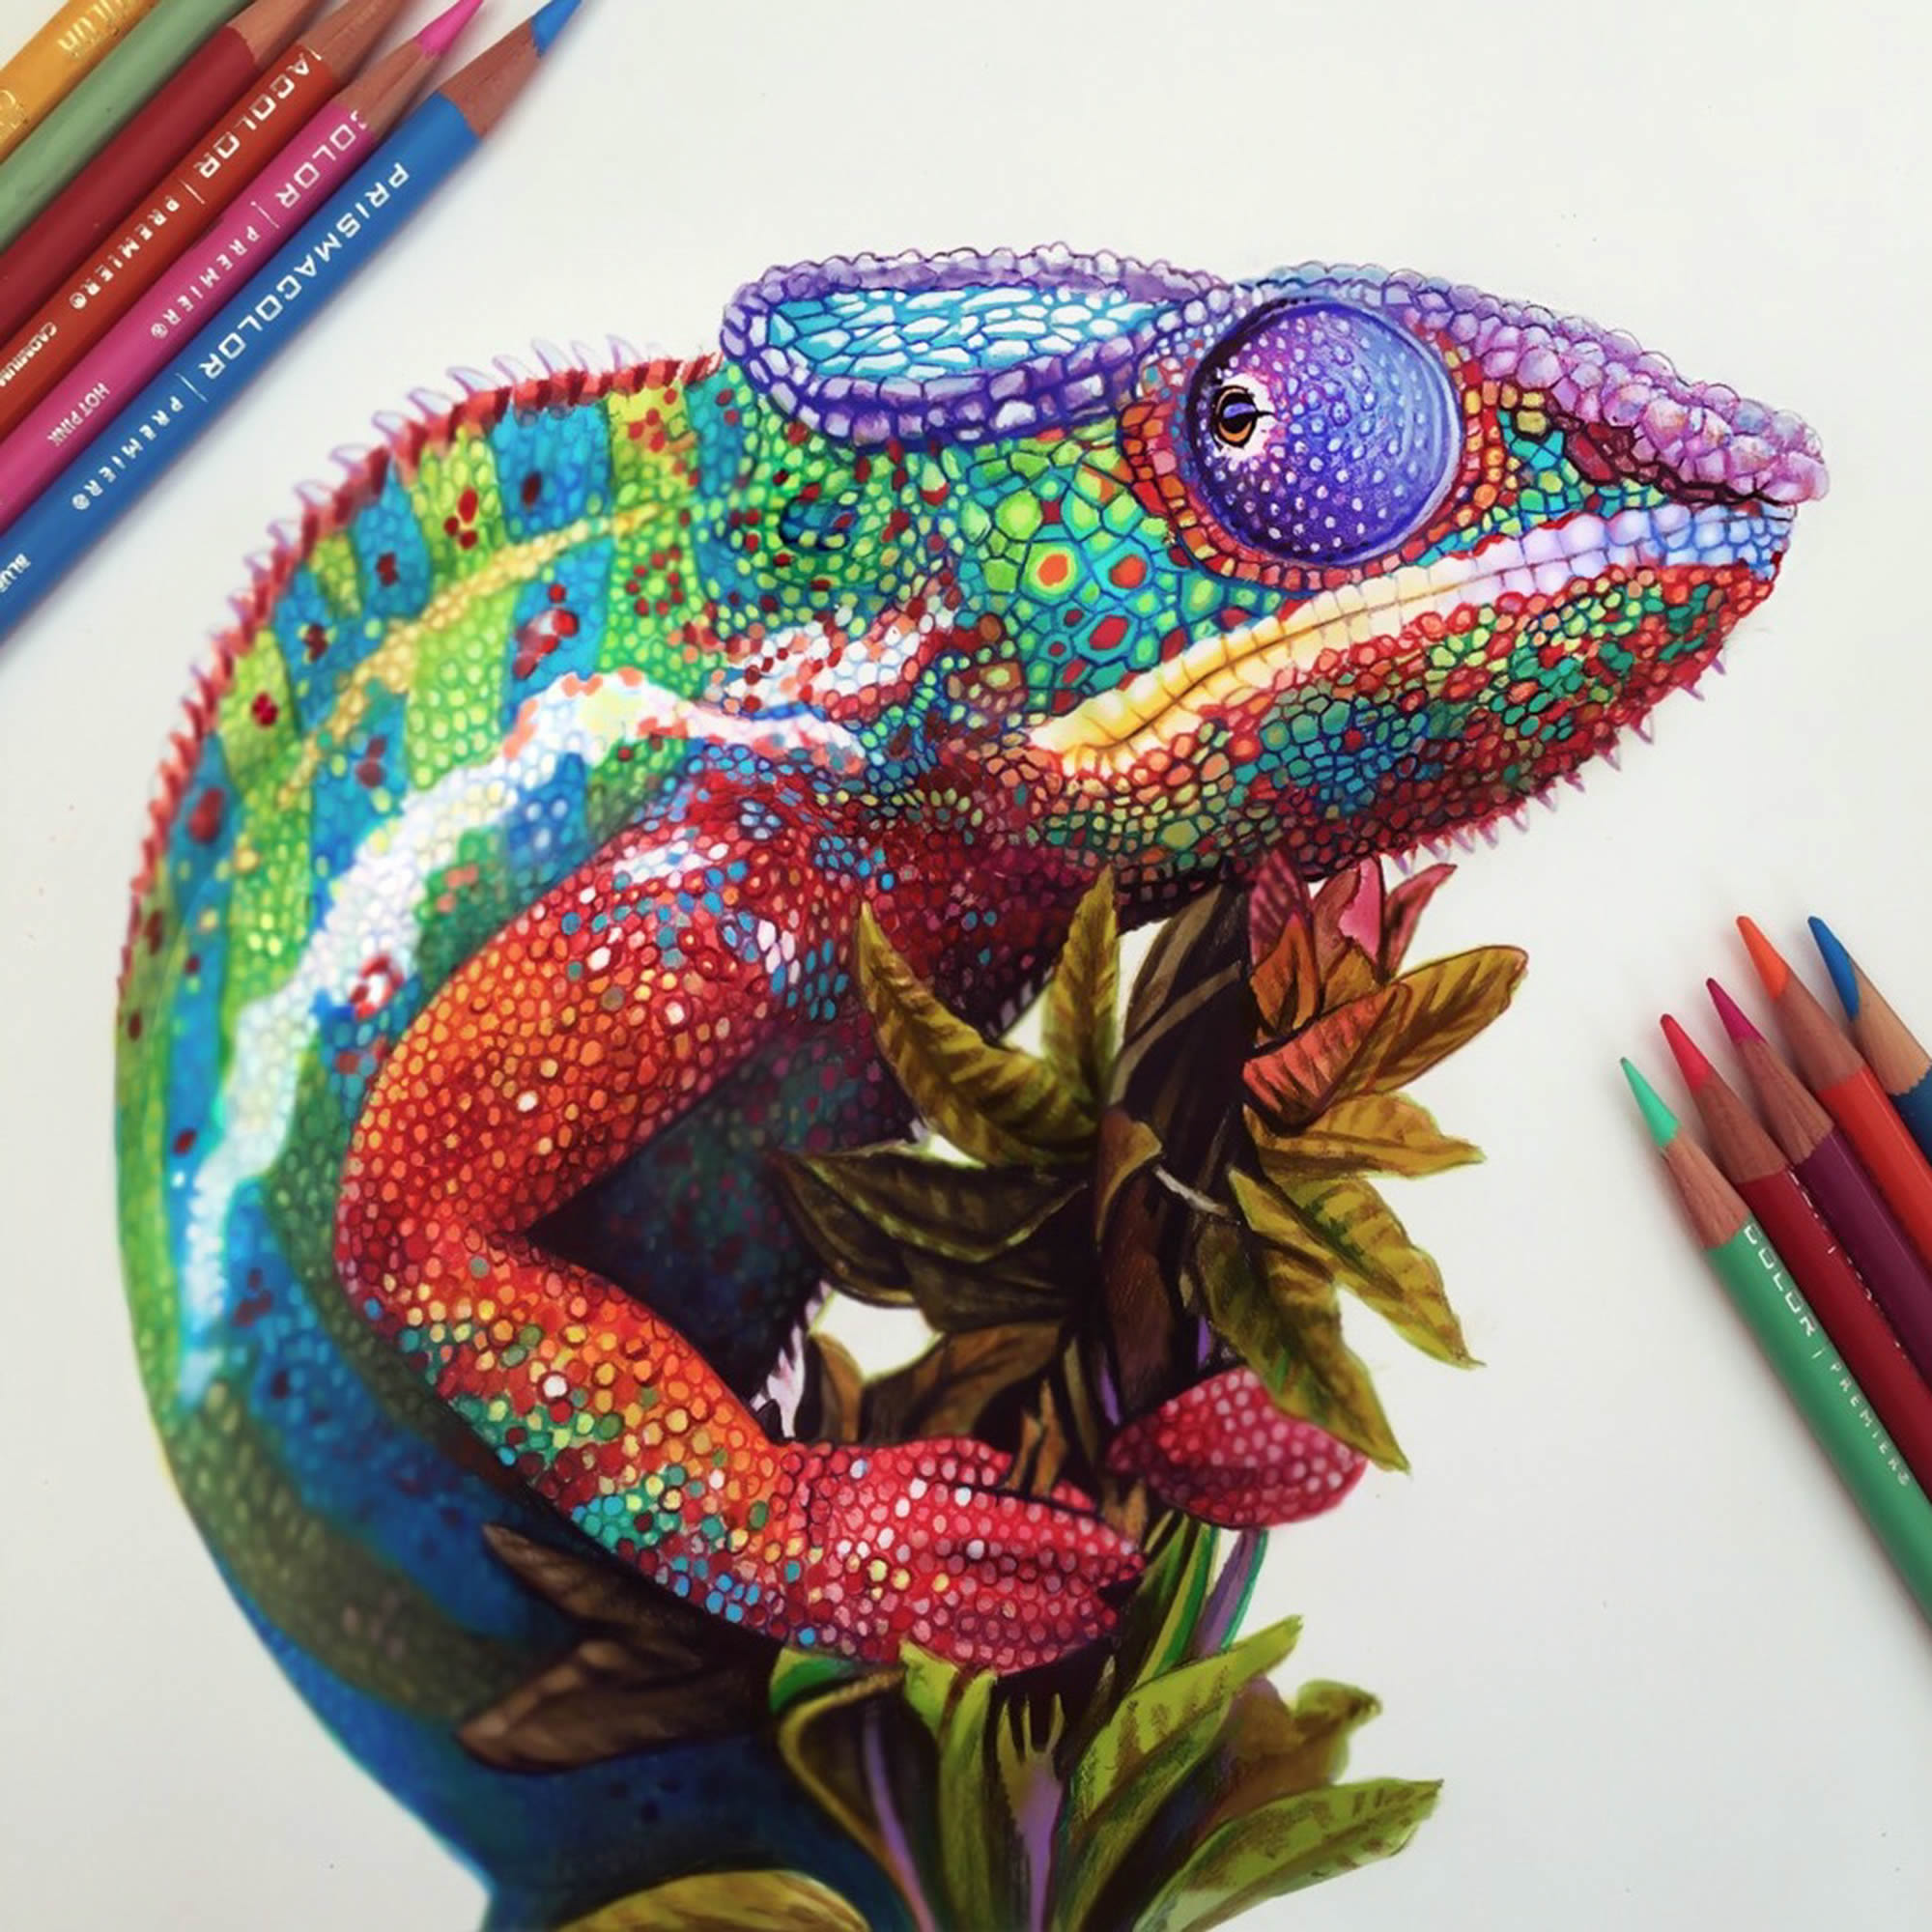 The Chameleon and Other 3D Drawings by Morgan Davidson